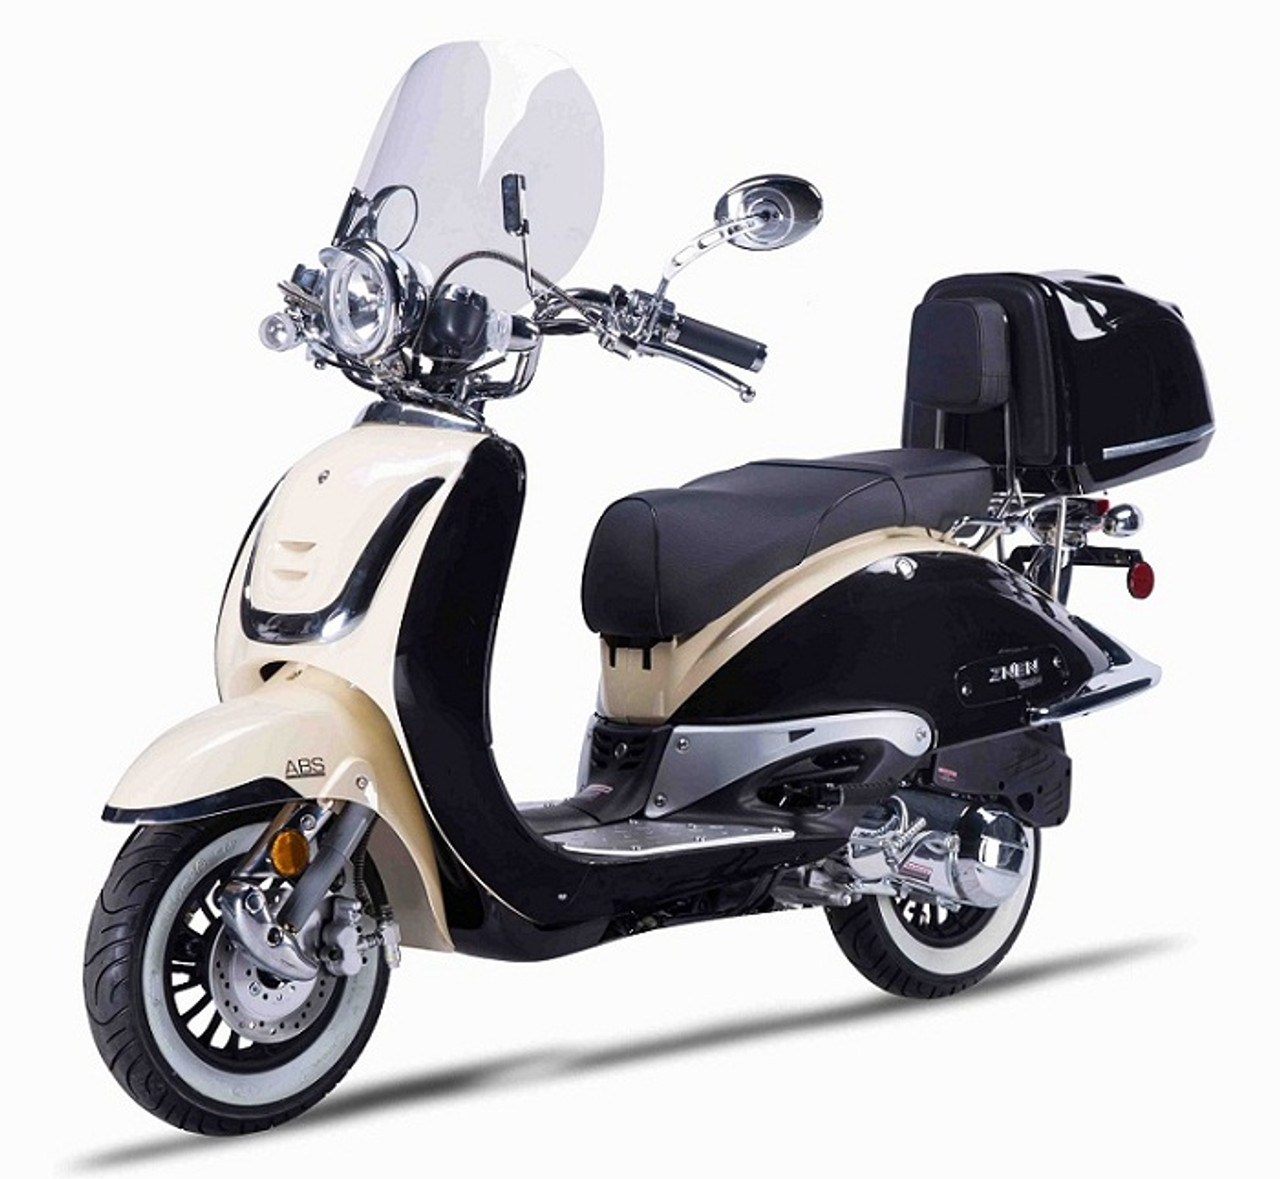 Amigo Znen ZN50T-G-50 49cc Moped 4 Stroke Single Cylinder CA Approved